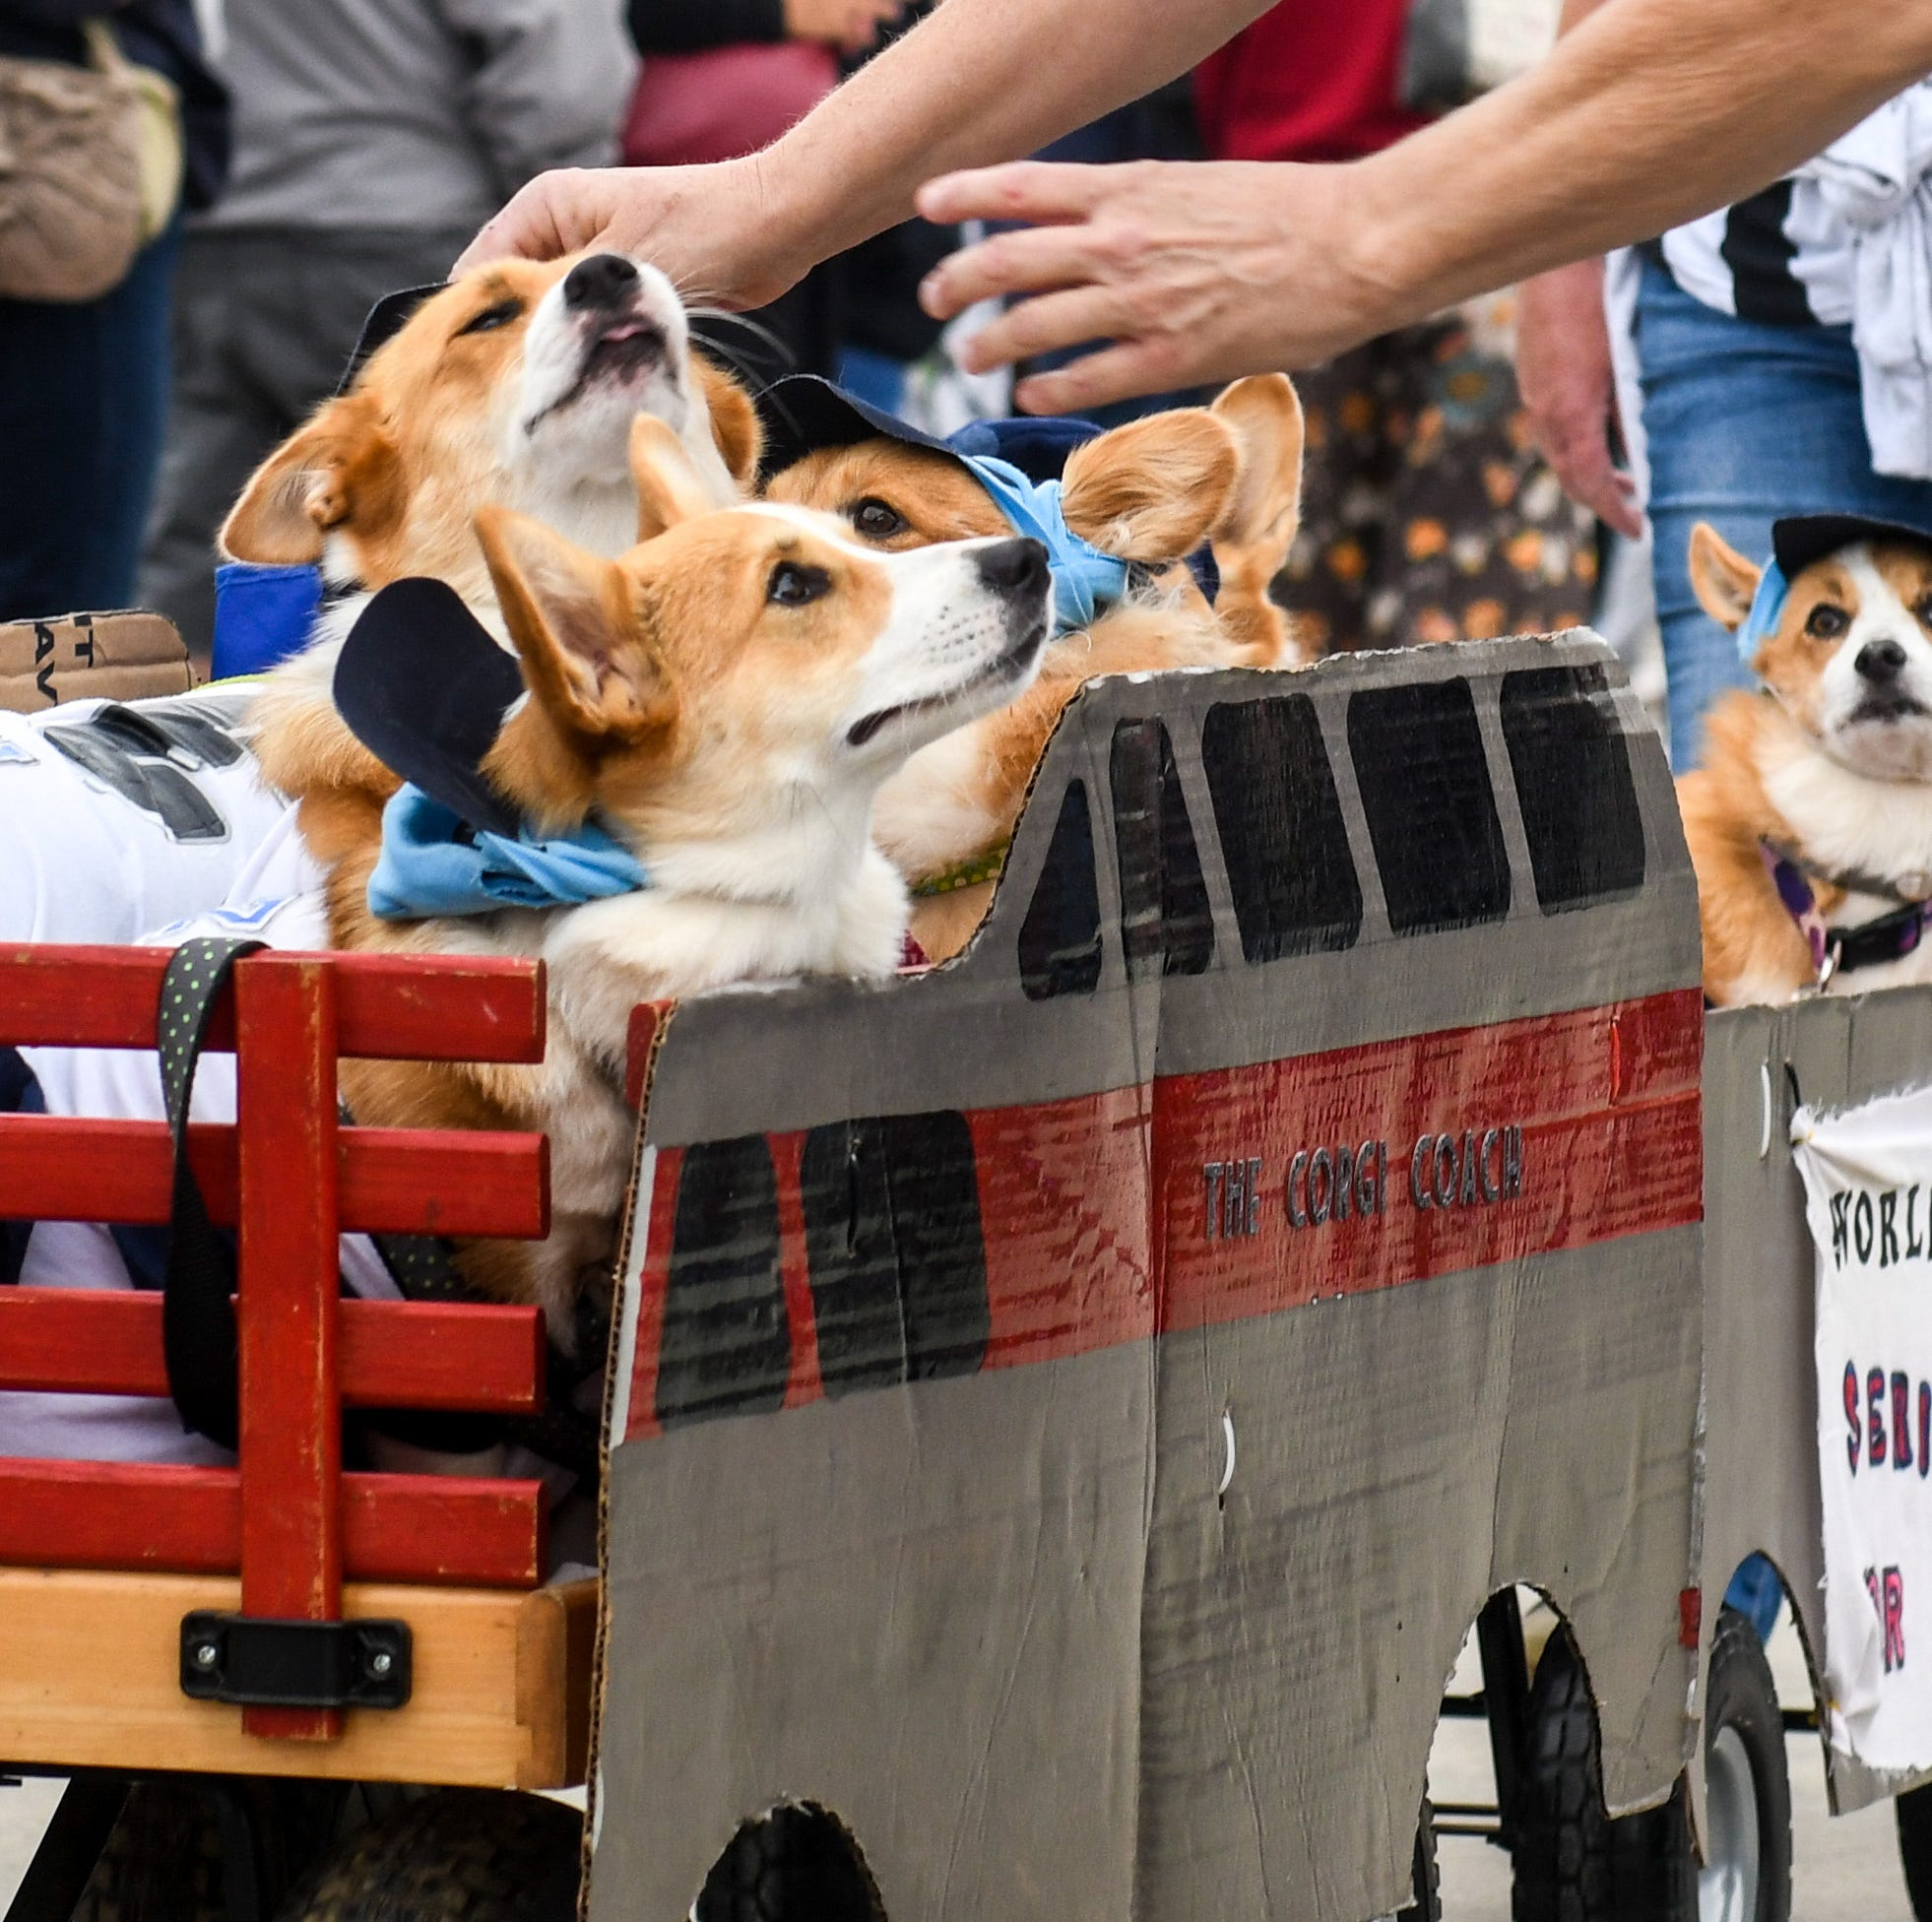 WATCH: Pet Parade fills Ocean City boardwalk with costumes, crowds